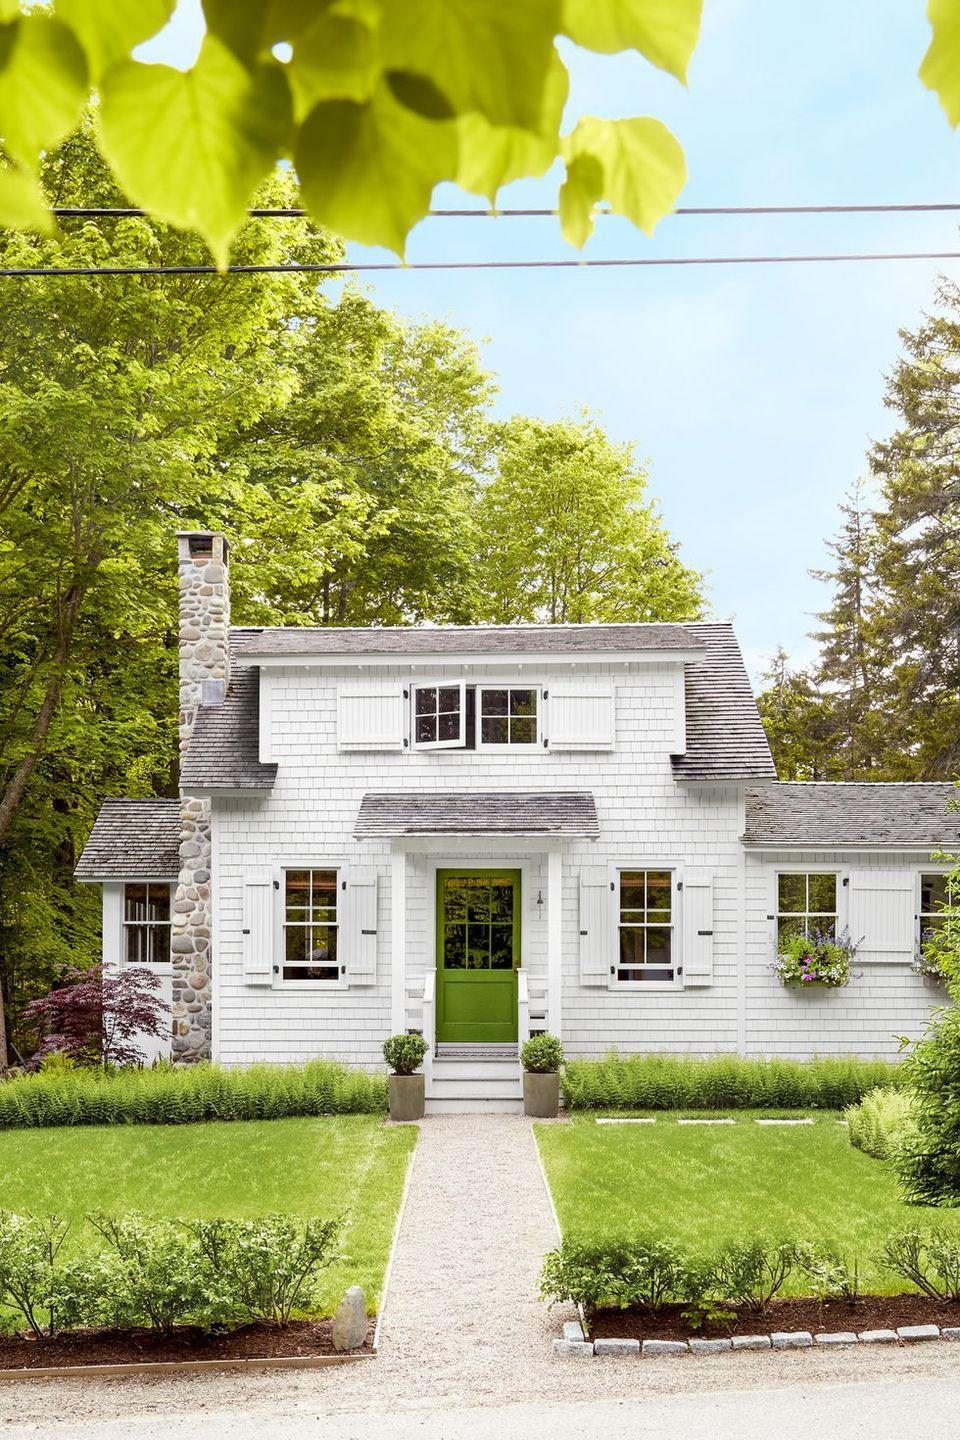 """<p>Create the coziest cottage with this warm shade of green that will match a thriving lawn.</p><p><a class=""""link rapid-noclick-resp"""" href=""""https://store.benjaminmoore.com/storefront/color-samples/paint-color-samples-1-pint/prodPRM01A.html?sbcColor=2029_10"""" rel=""""nofollow noopener"""" target=""""_blank"""" data-ylk=""""slk:SHOP GREEN PAINT"""">SHOP GREEN PAINT</a></p>"""